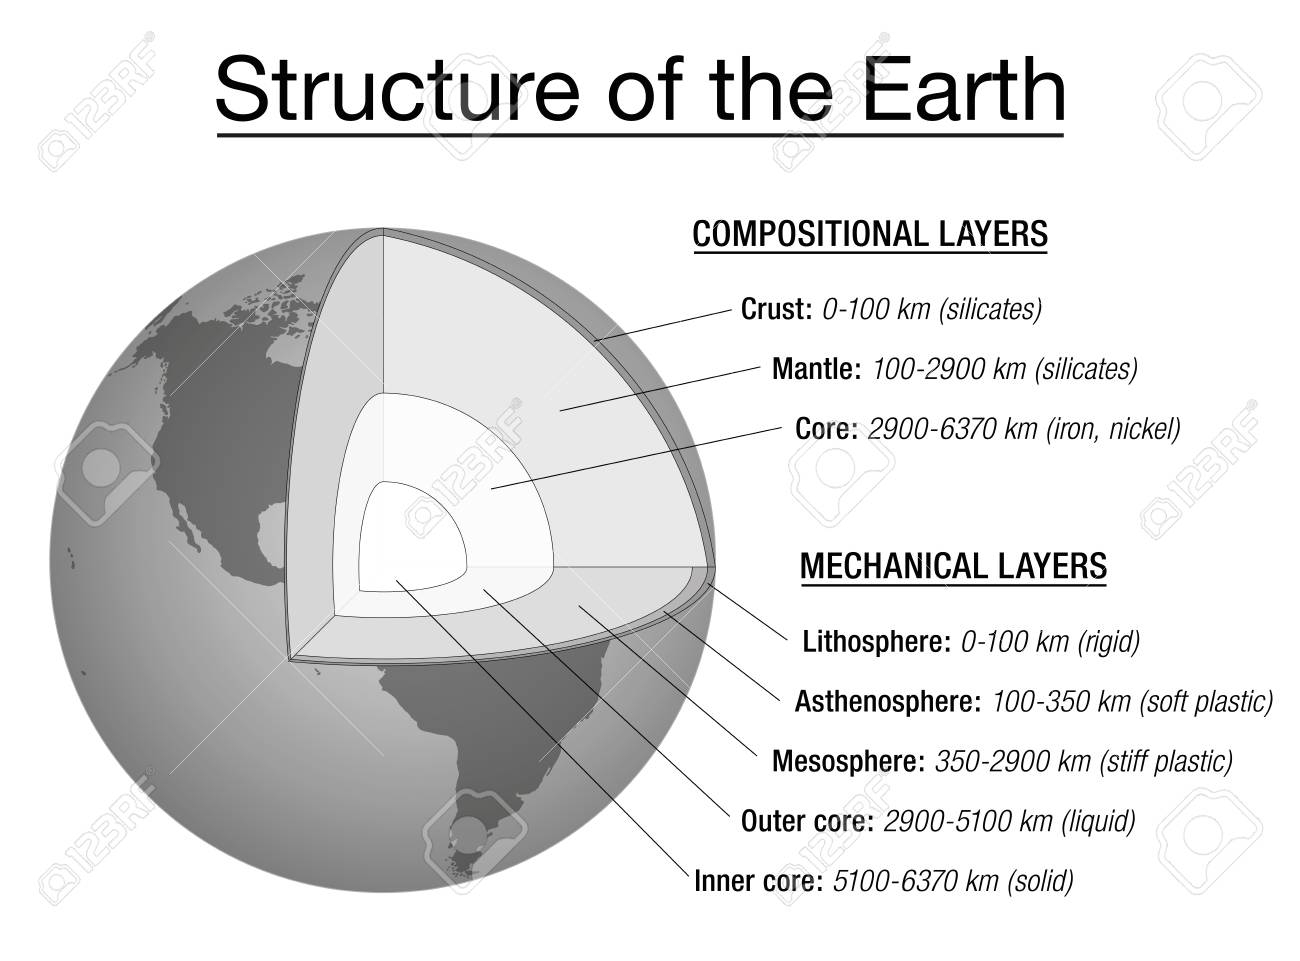 hight resolution of structure of the earth explanation chart cross section and layers of the earths interior